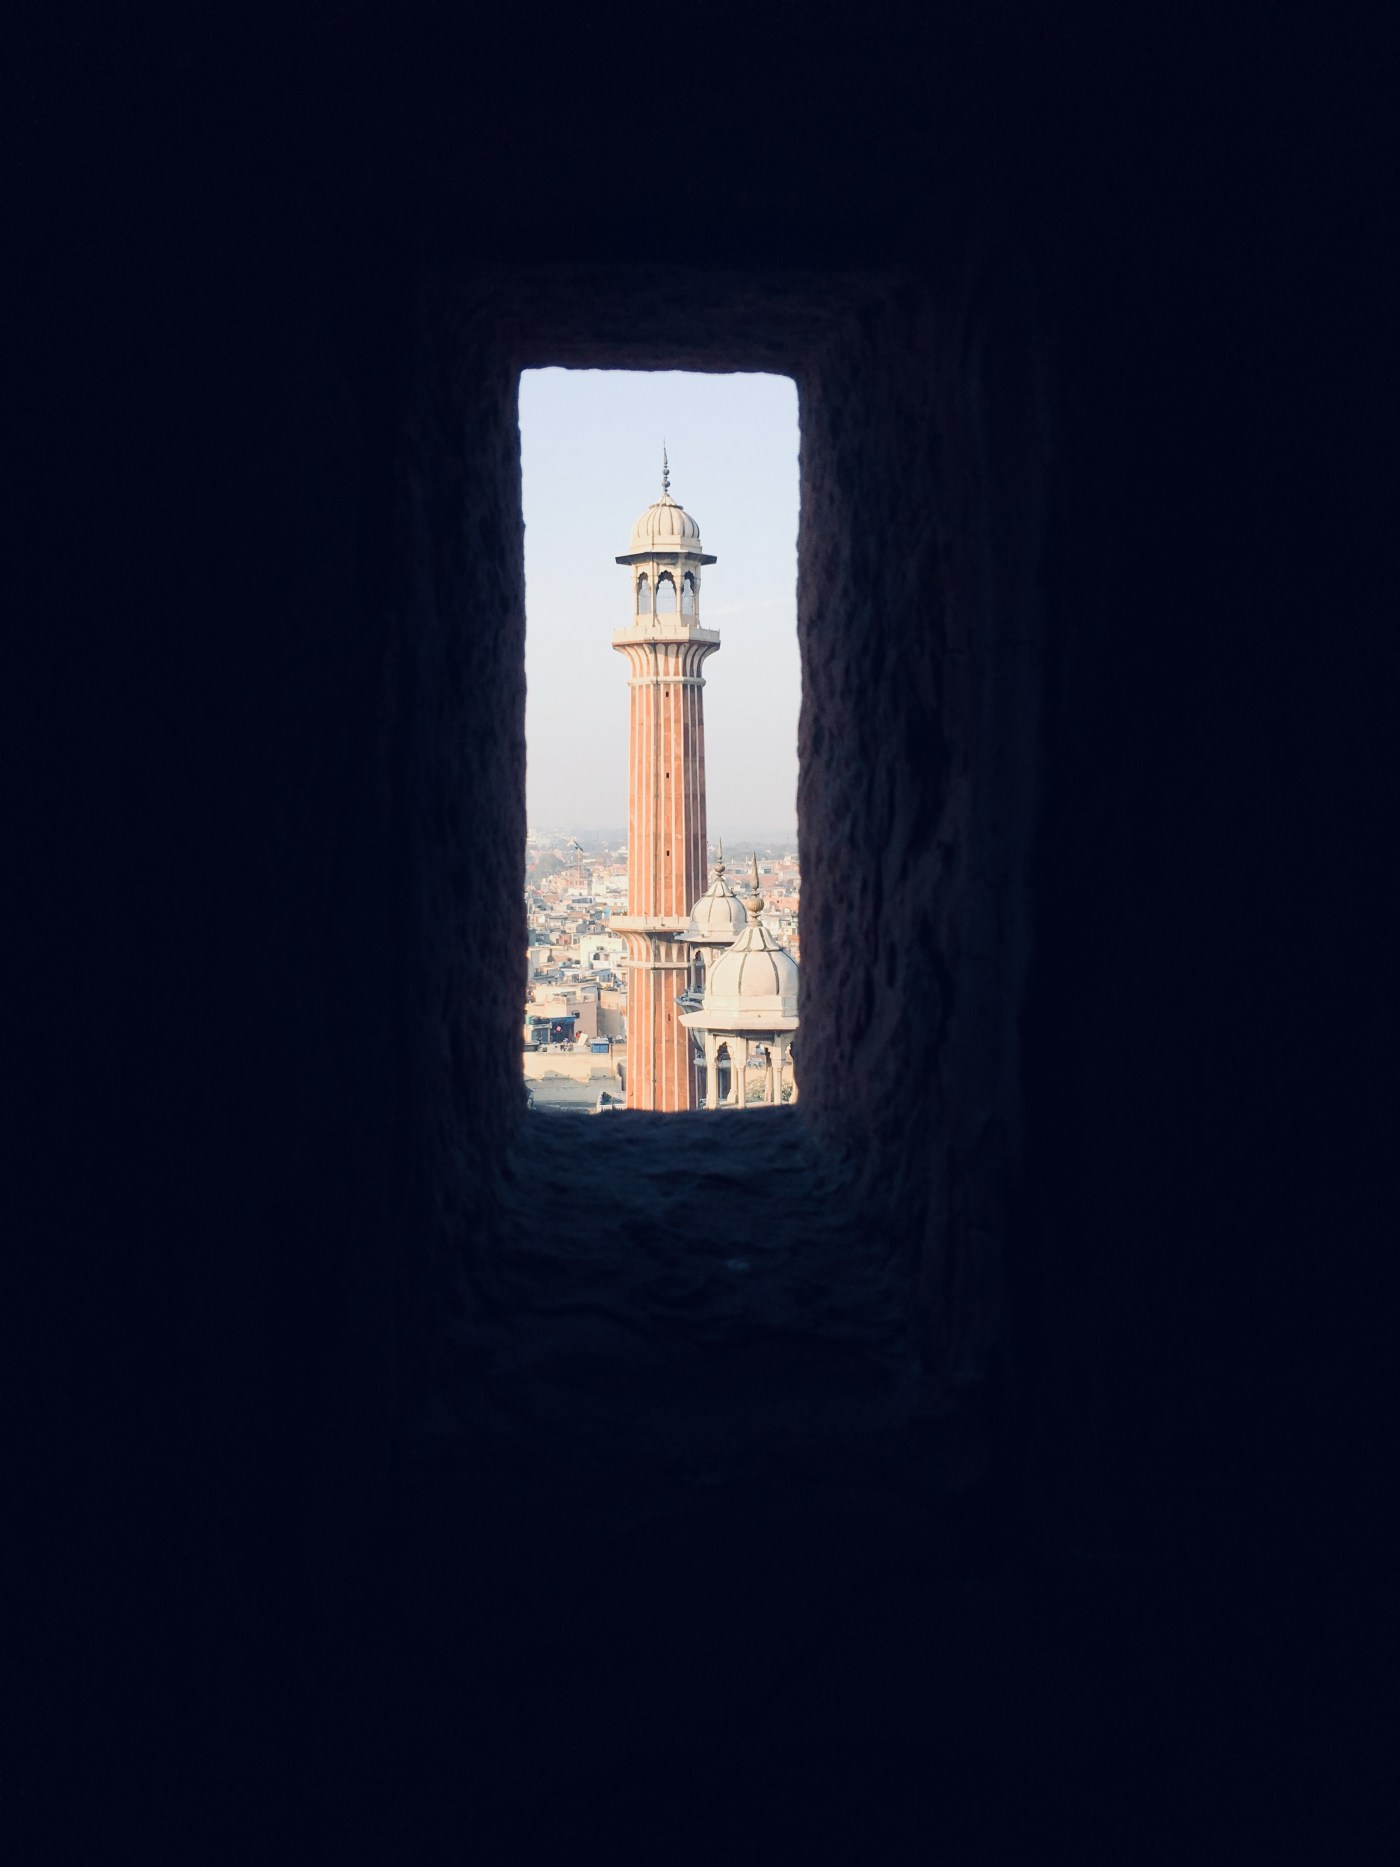 The small window in the Minaret in Jama Masjid   The largest mosque in India